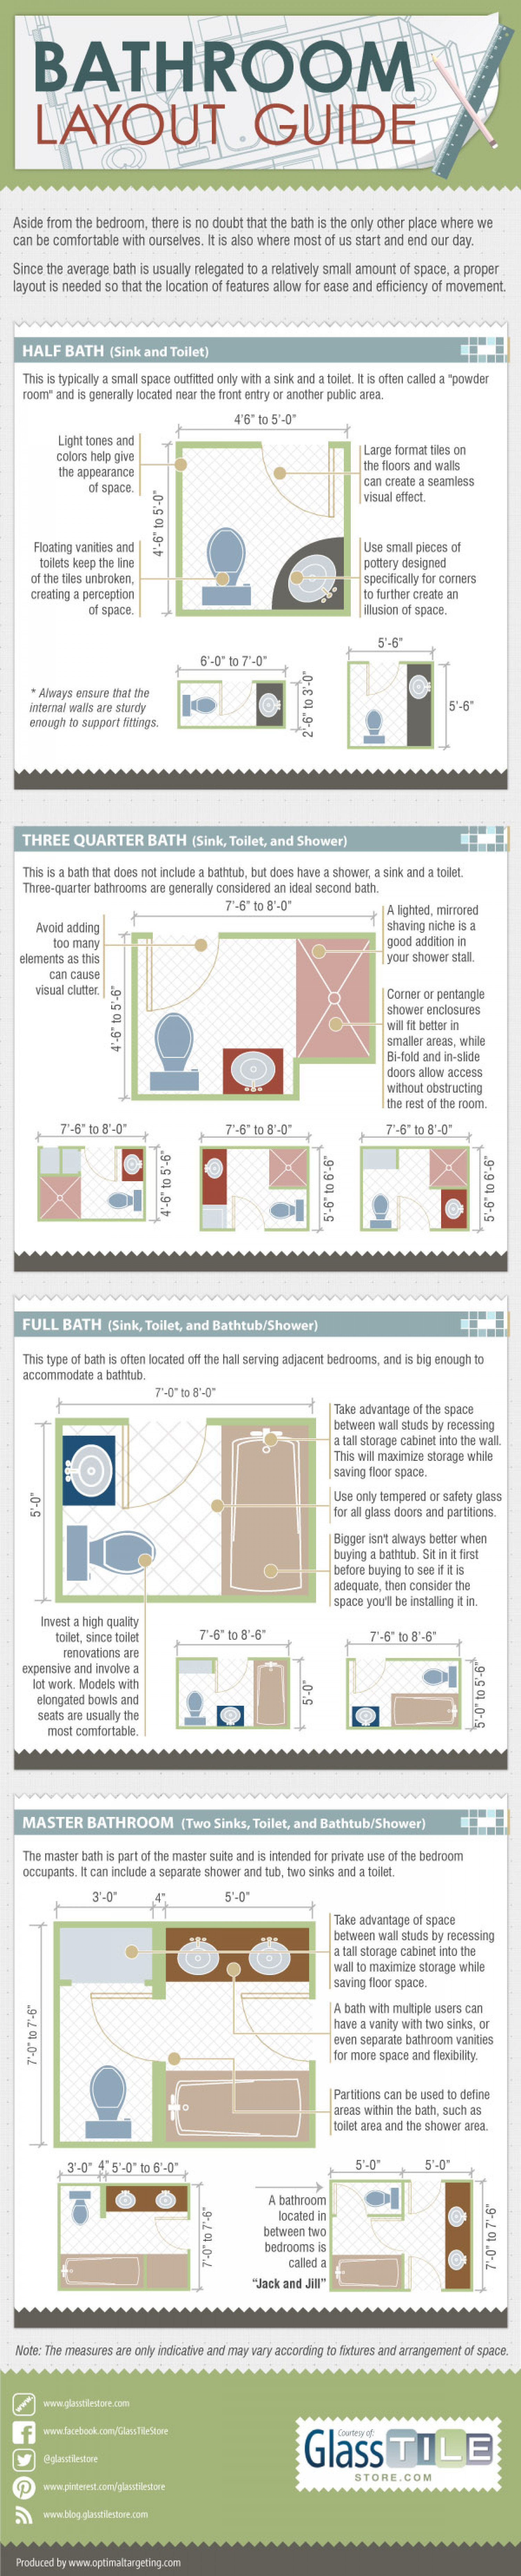 Bathroom Layout Guide  Infographic